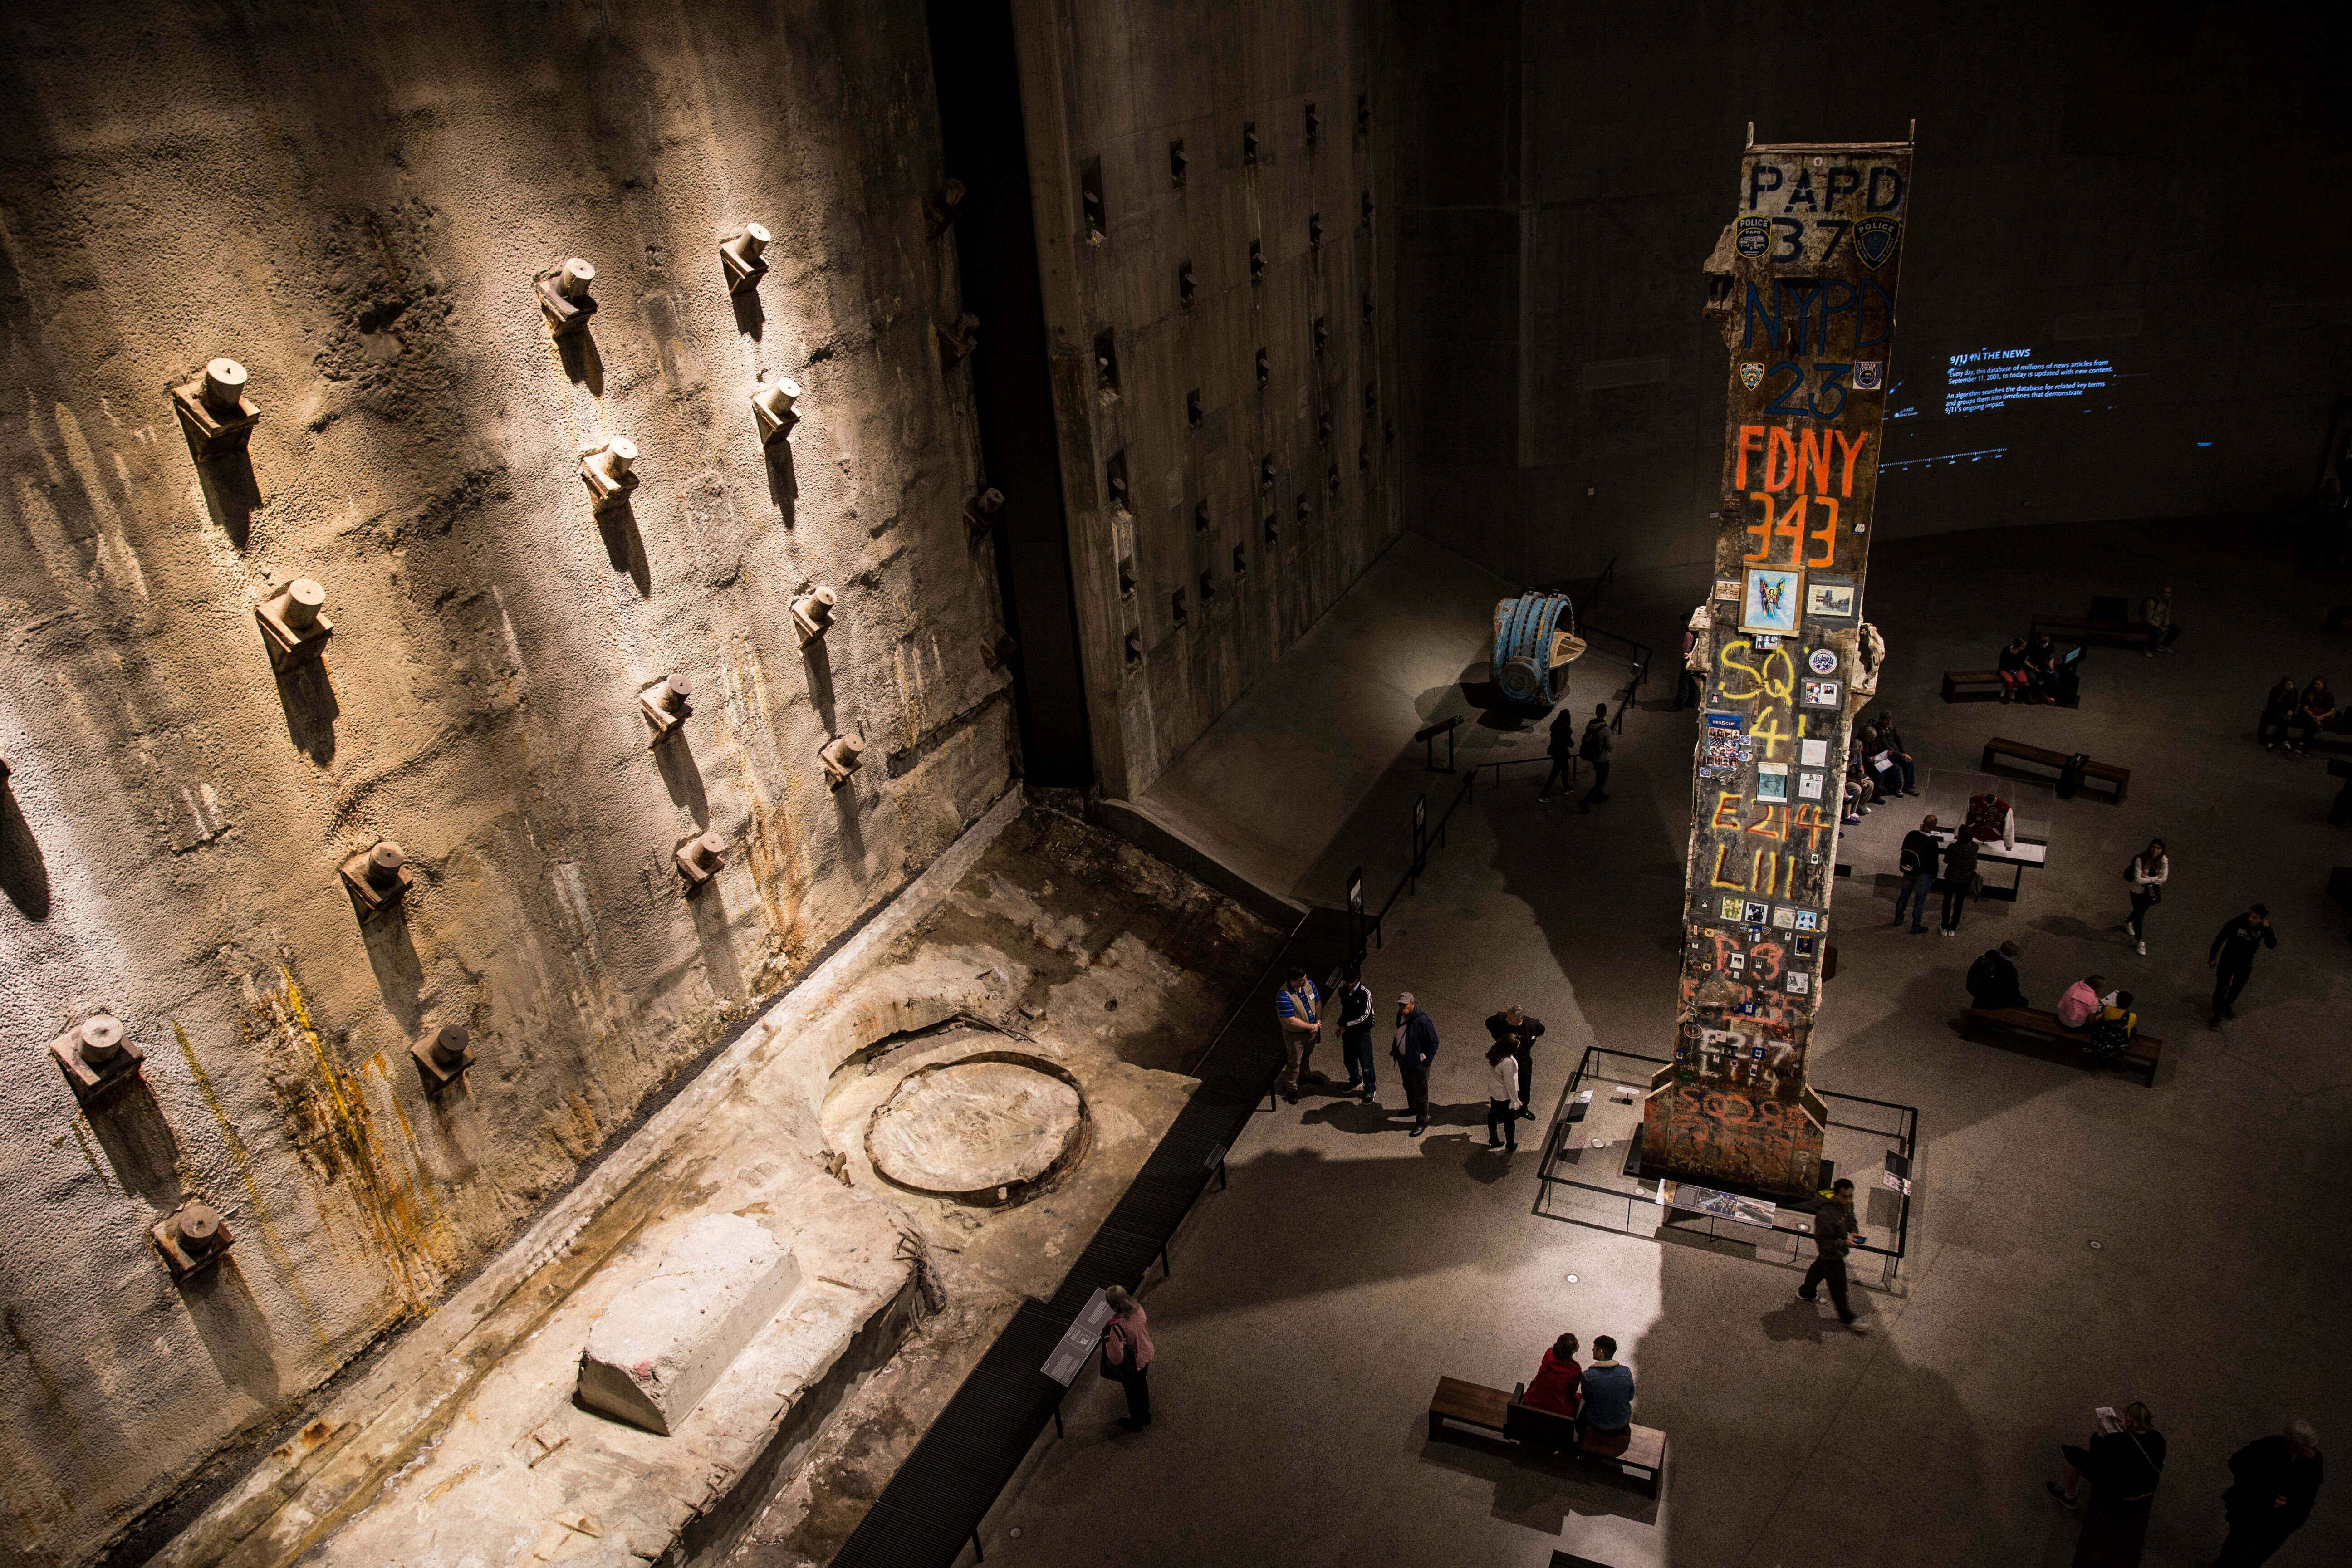 """The inside of the National 9/11 Memorial Museum in New York, United States, on Oct. 12, 2017. On the left is the """"slurry wall"""